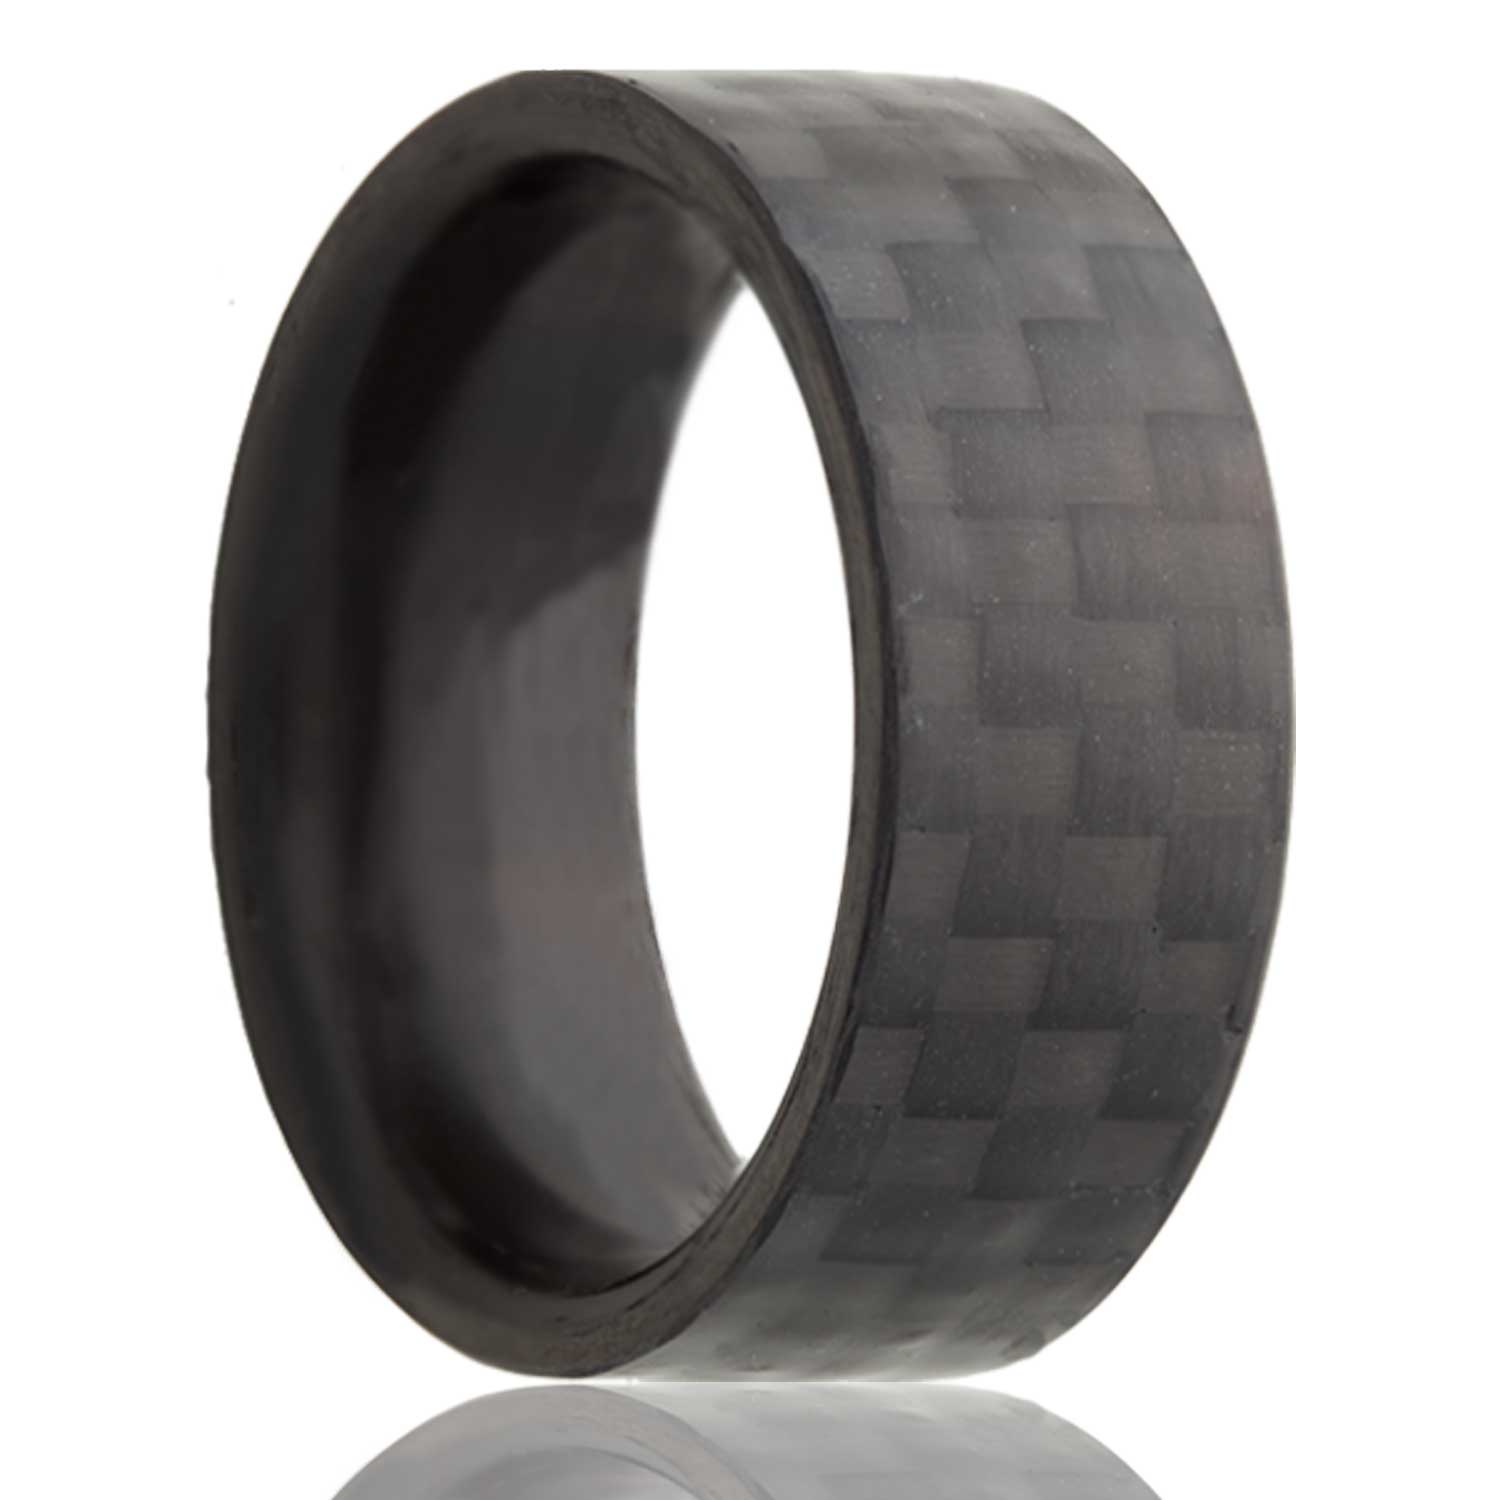 Carbon Fiber Diamontrigue Jewelry: Carbon Fiber Jewelry